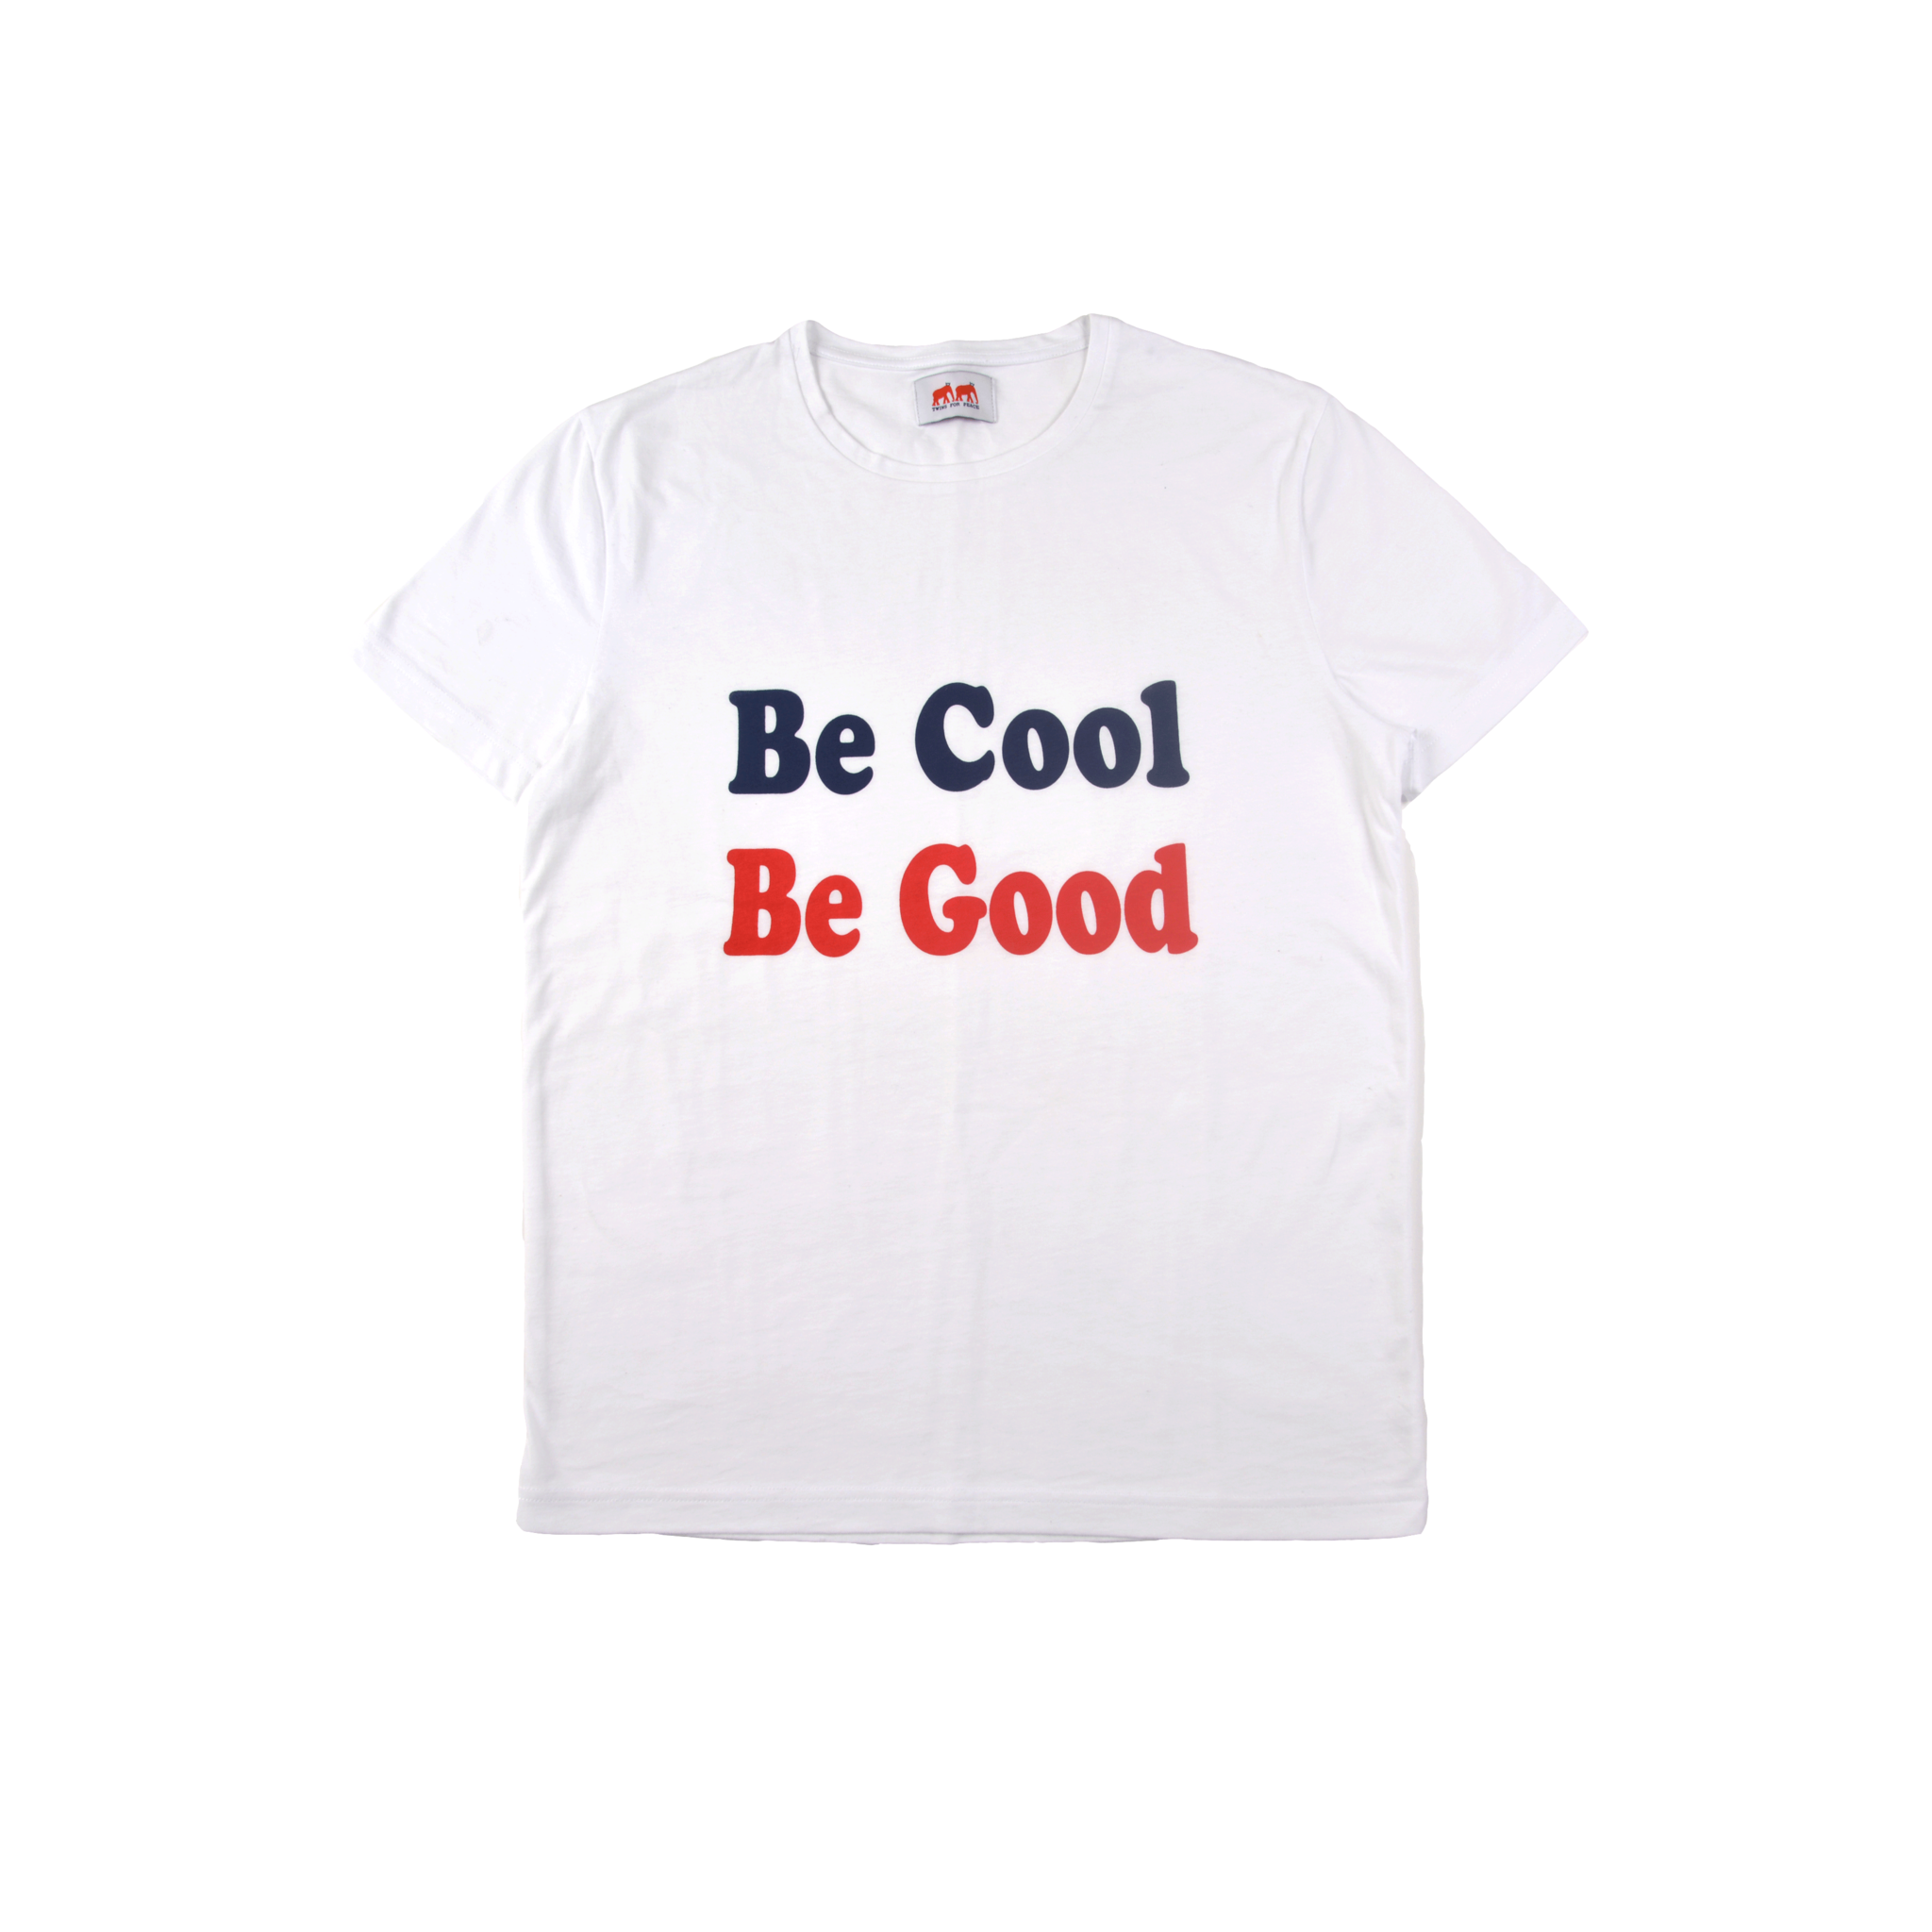 T Shirt Be Cool Be Good - WHITE COTTON T SHIRT